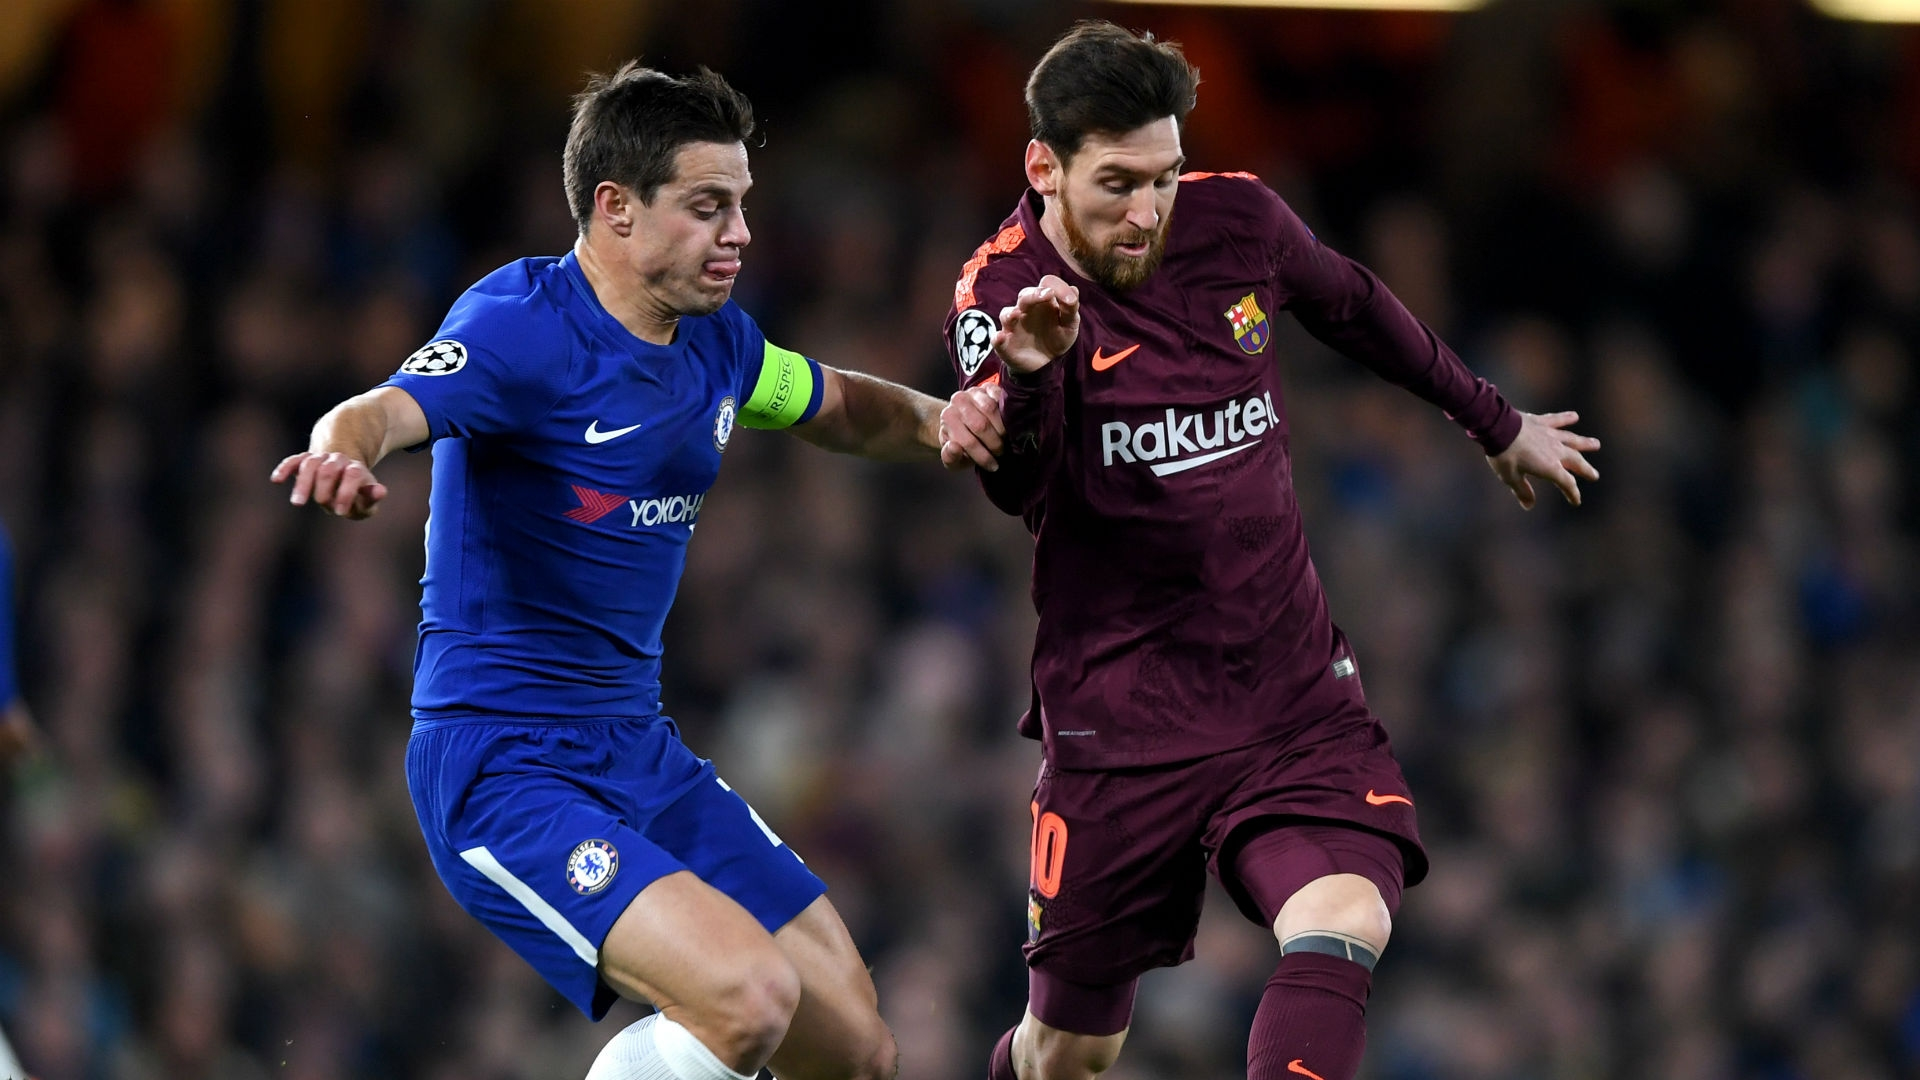 Azpilicueta challenging Lionel Messi for the ball